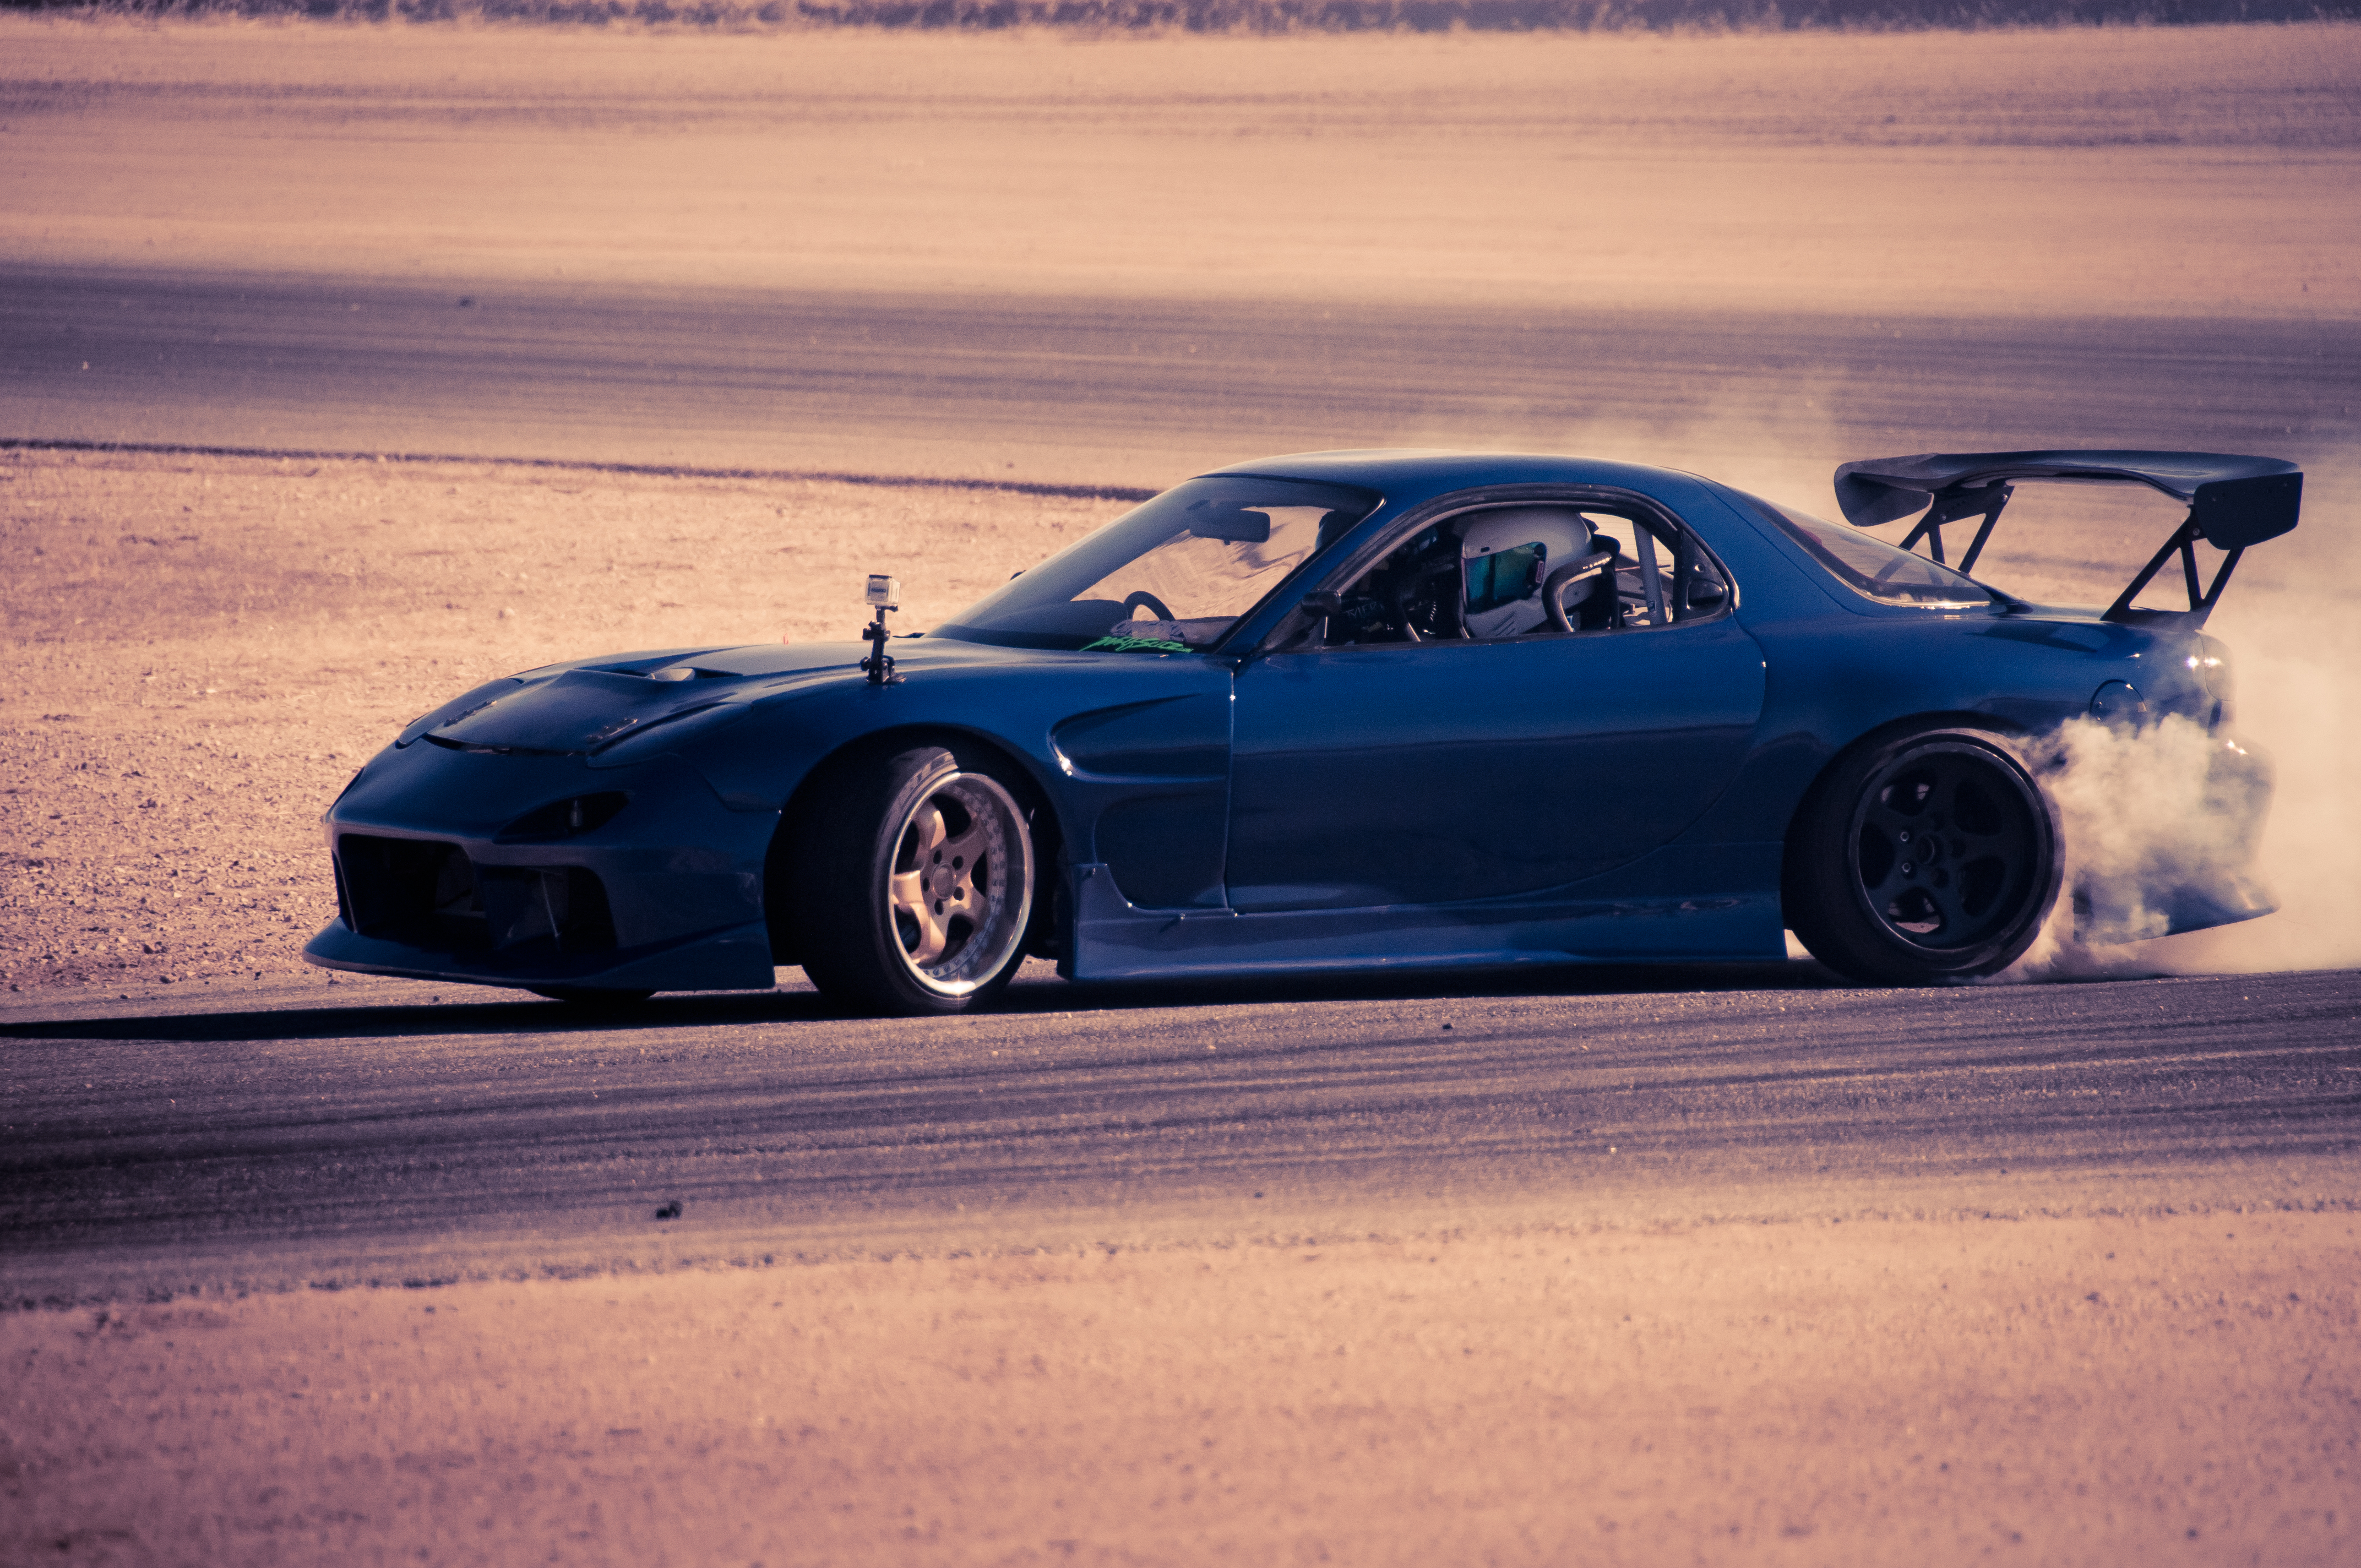 157688 download wallpaper Cars, Mazda, Rx-7, Auto, Speed screensavers and pictures for free